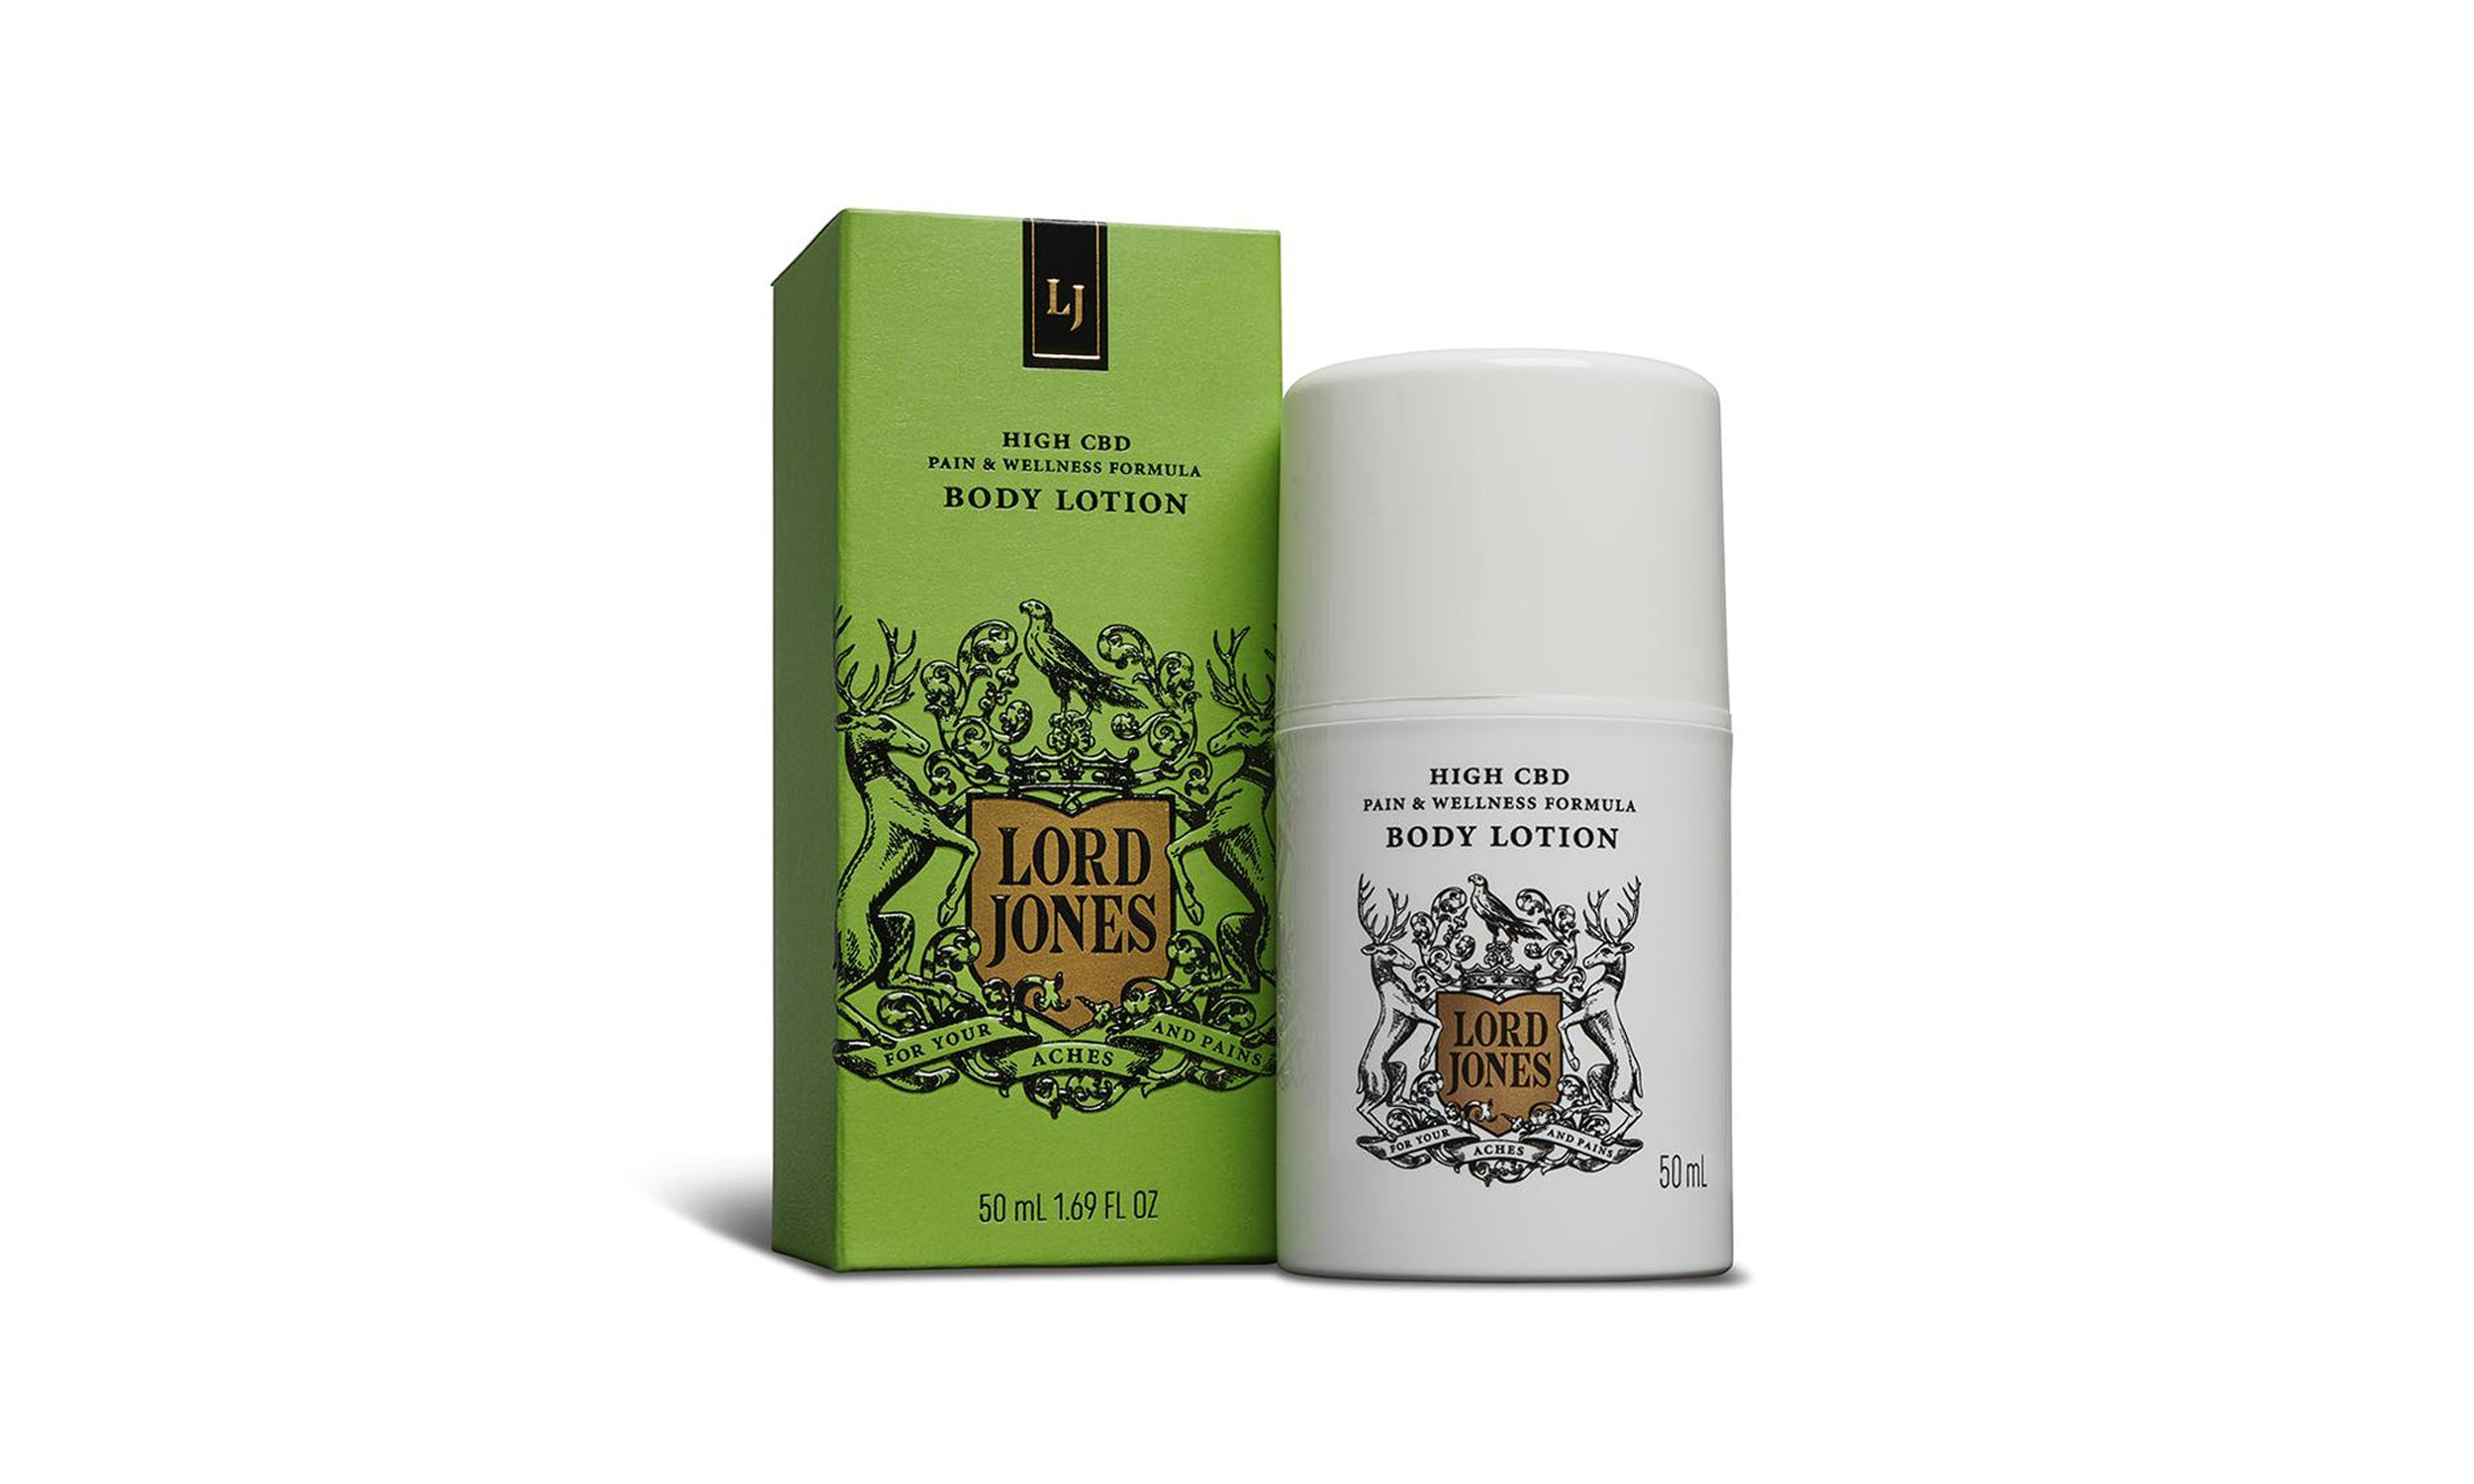 CBD For Pain Lord Jones Lotion Best CBD for Pain: The Best CBD Products for Quick Pain Relief